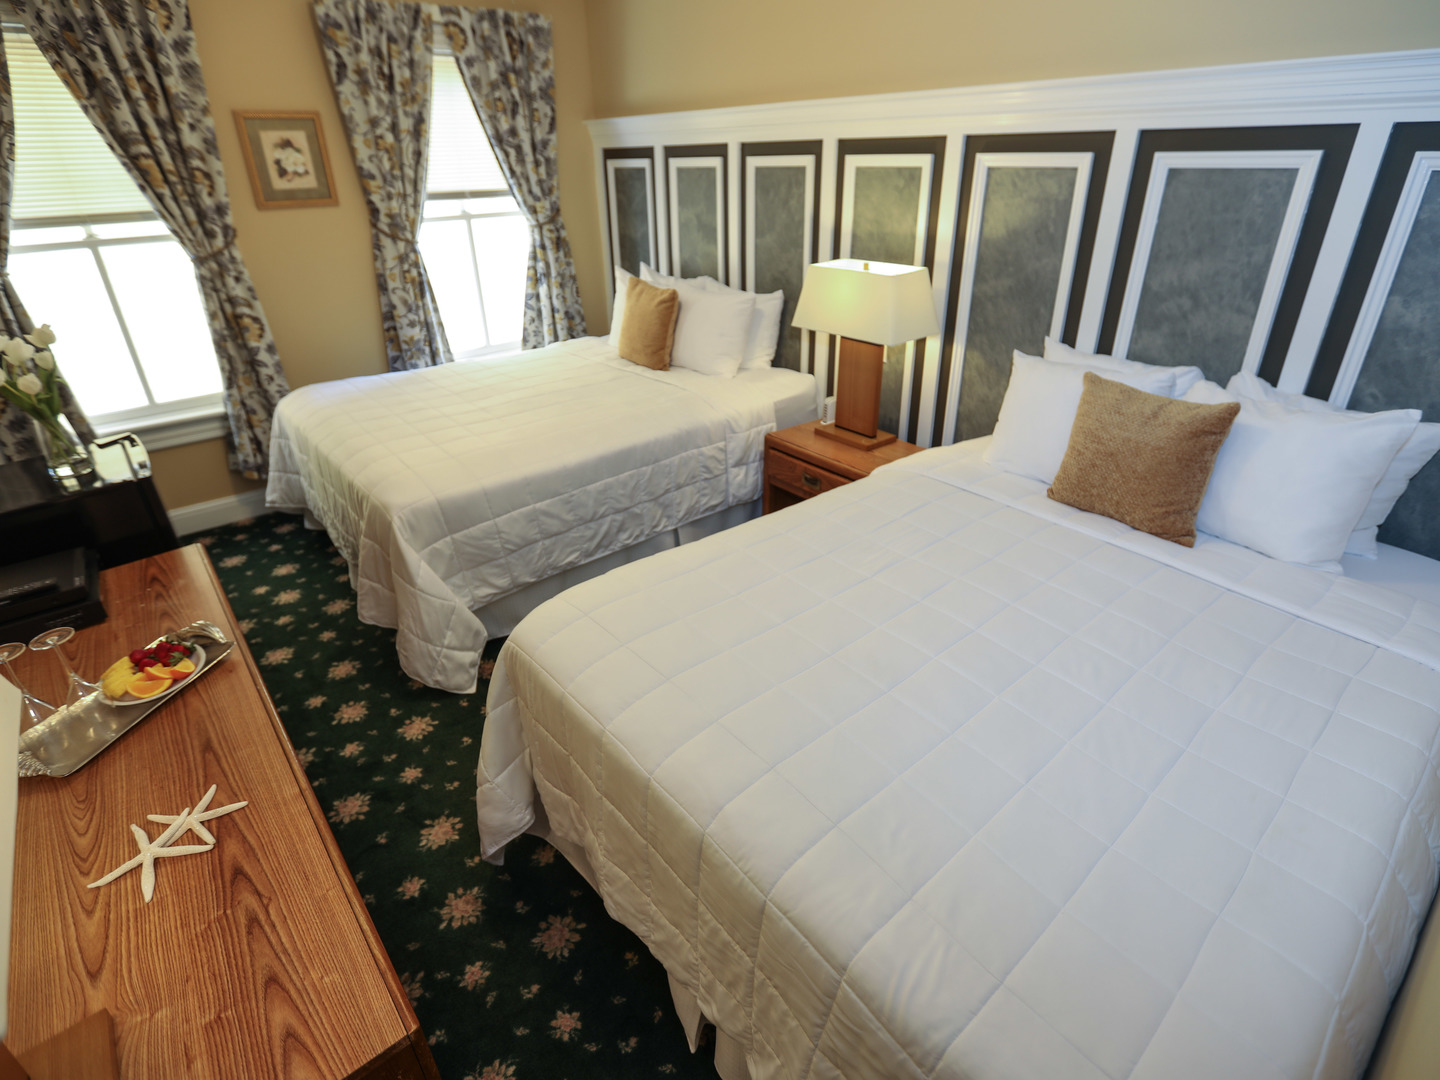 Neptune Township Bed and Breakfast